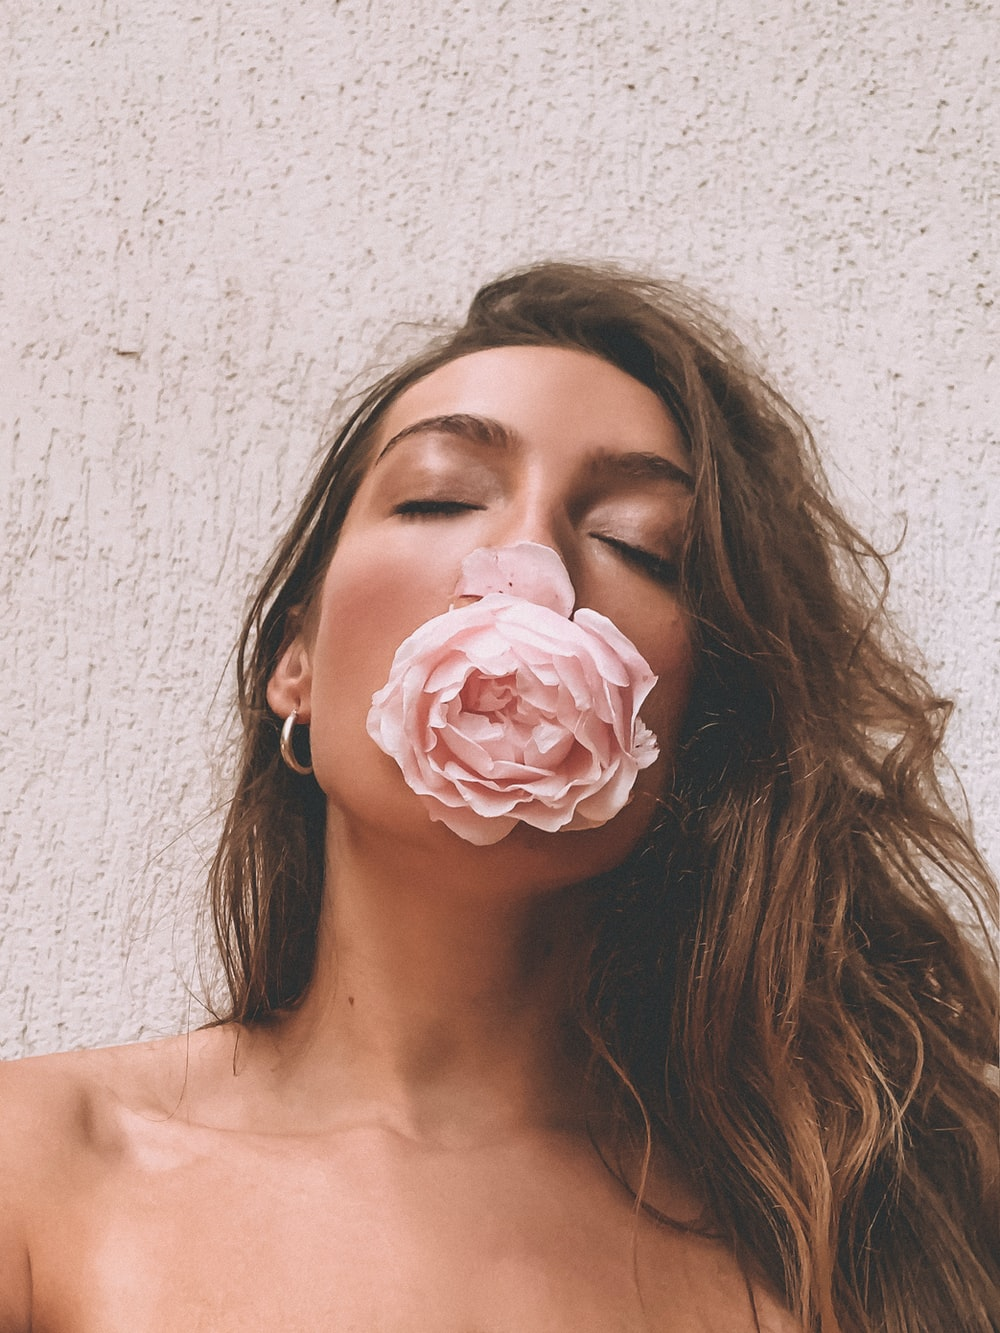 woman with pink rose on her mouth